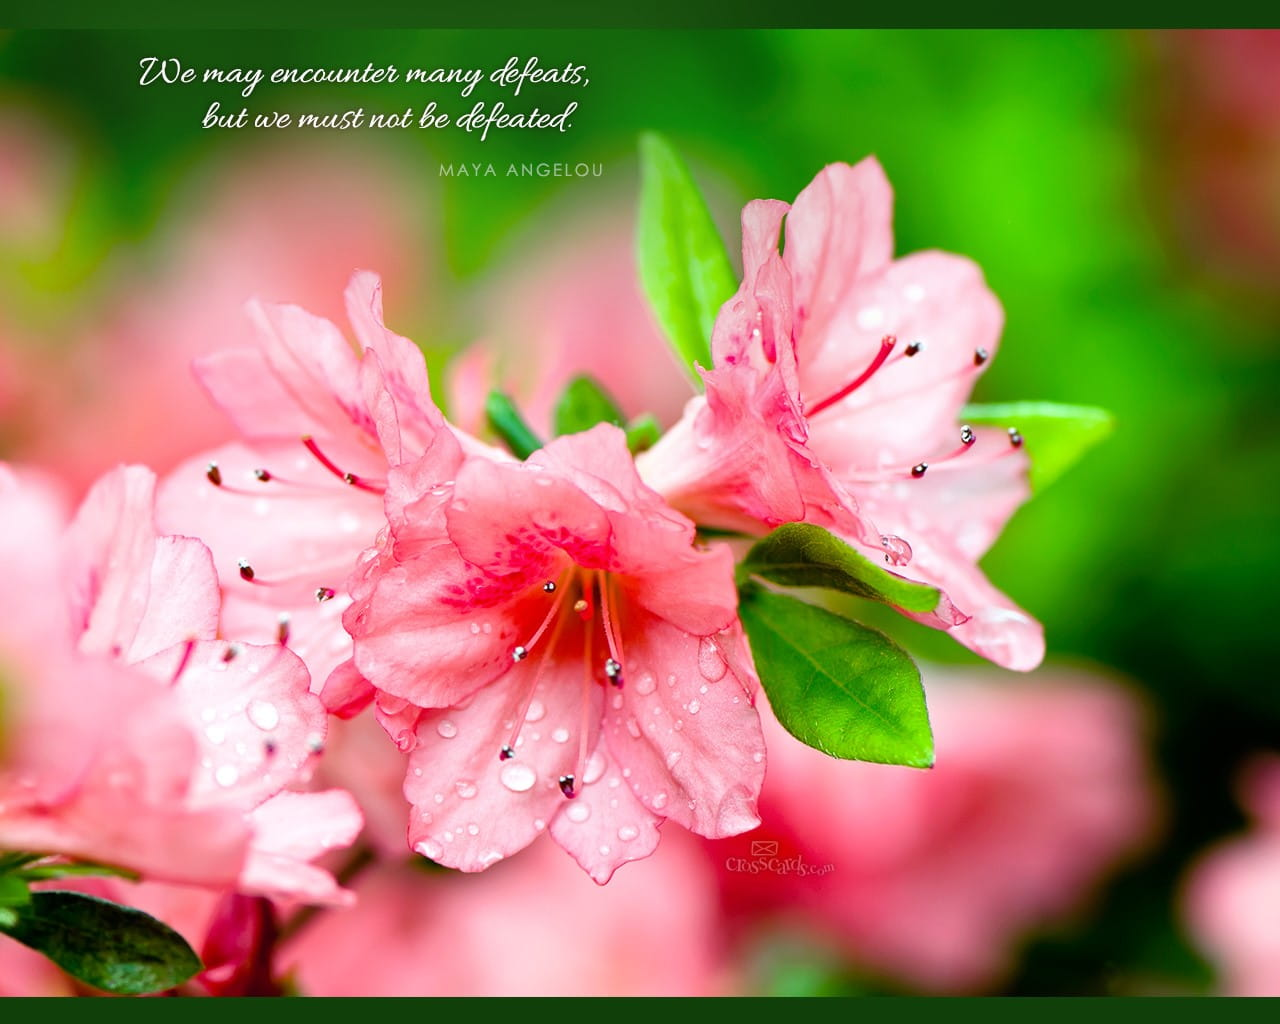 Cute Pretty Flower Calendar Wallpaper Maya Angelou Quote Desktop Wallpaper Free Backgrounds